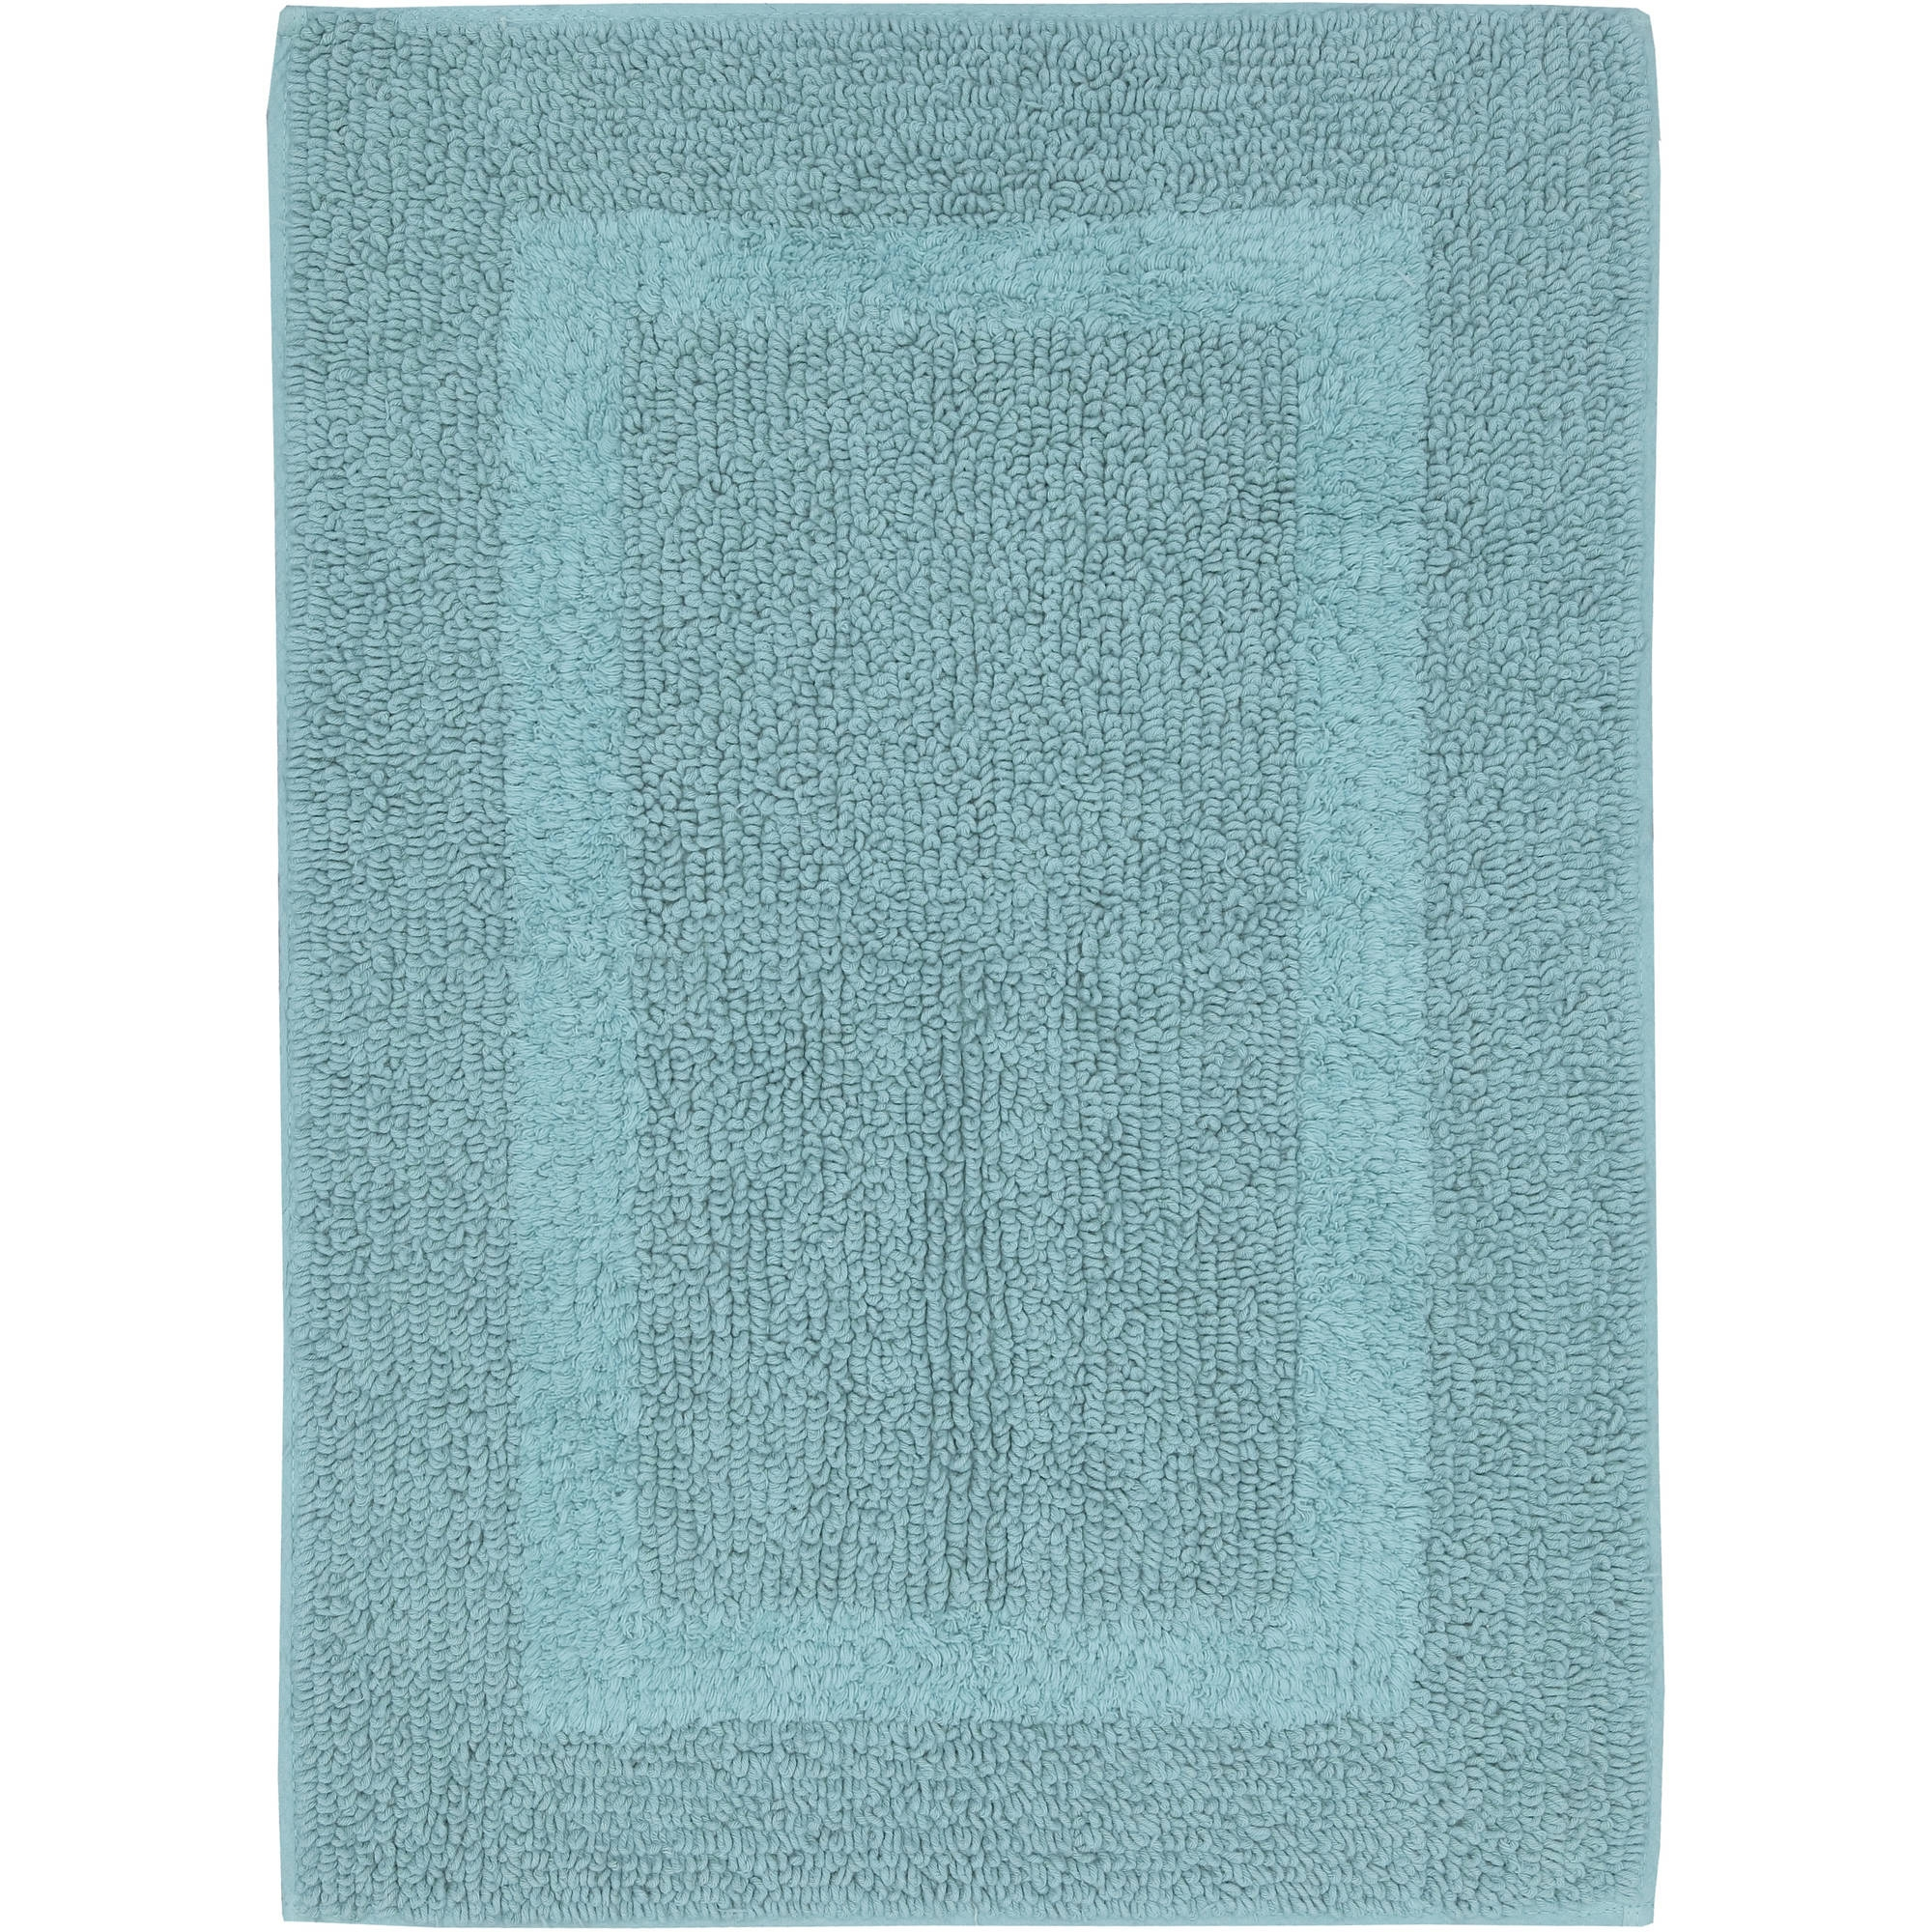 Permalink to Mohawk Bath Rugs Spa Collection